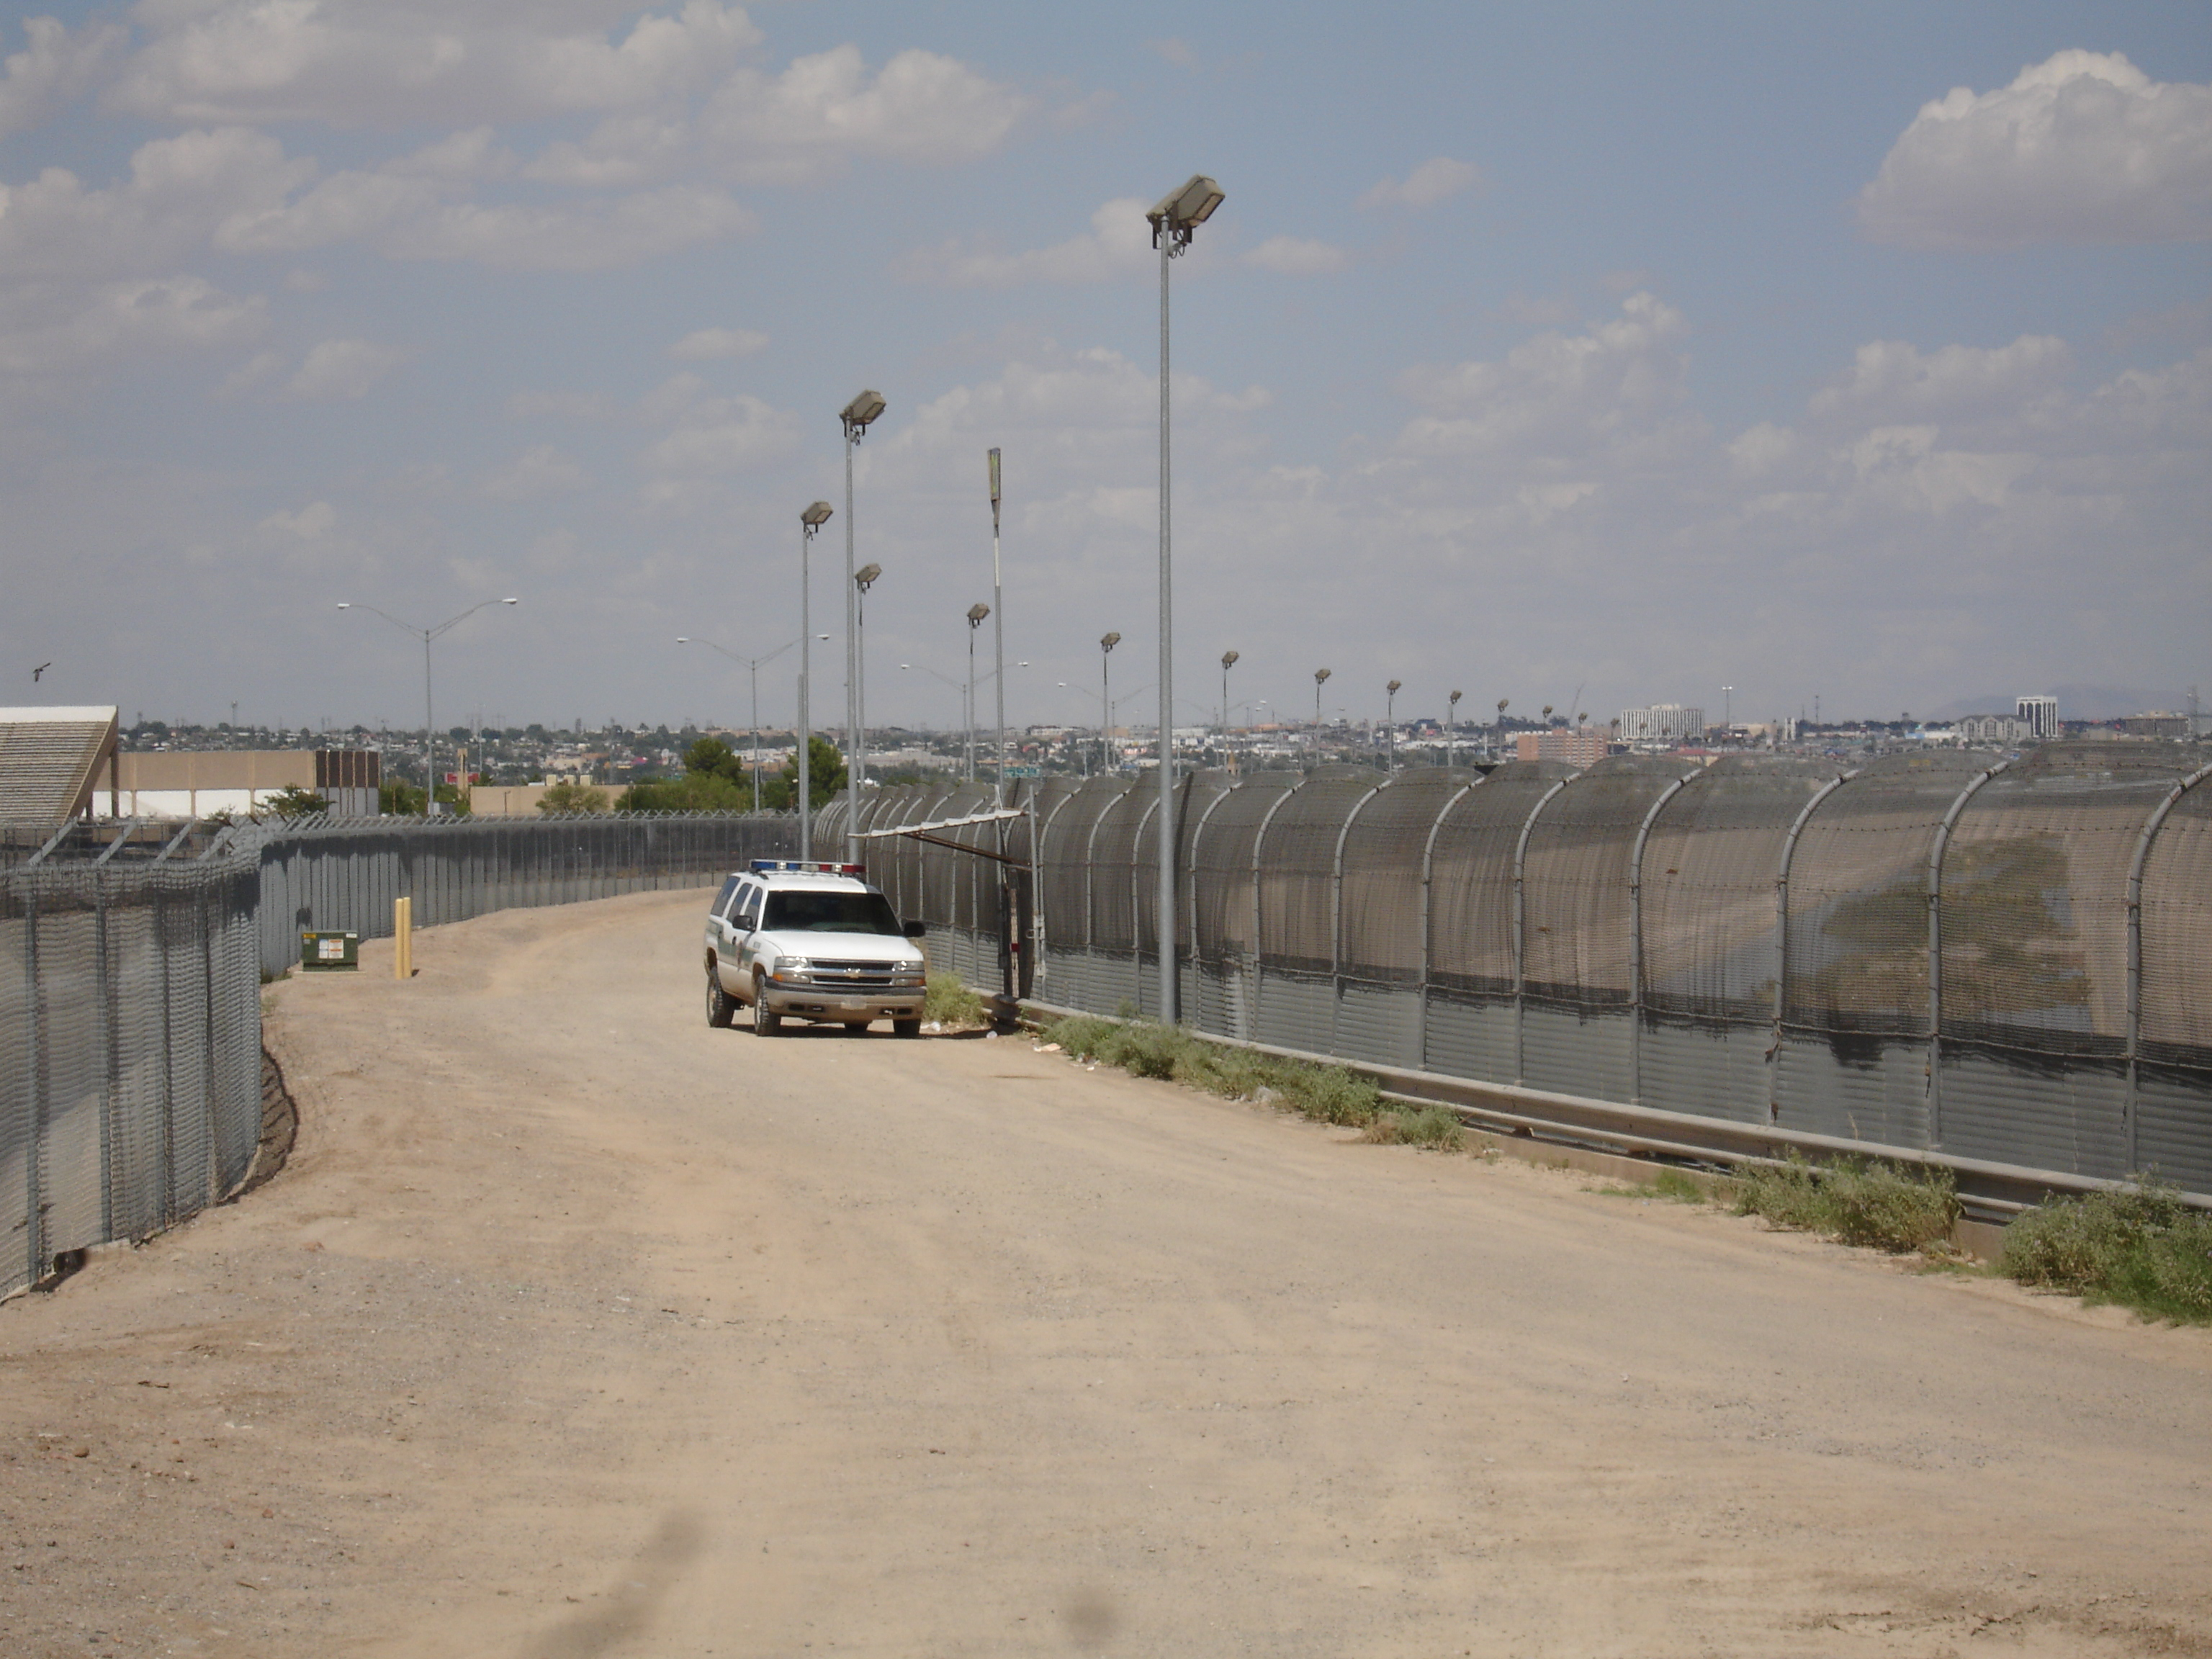 Economics Support Increased Border Security